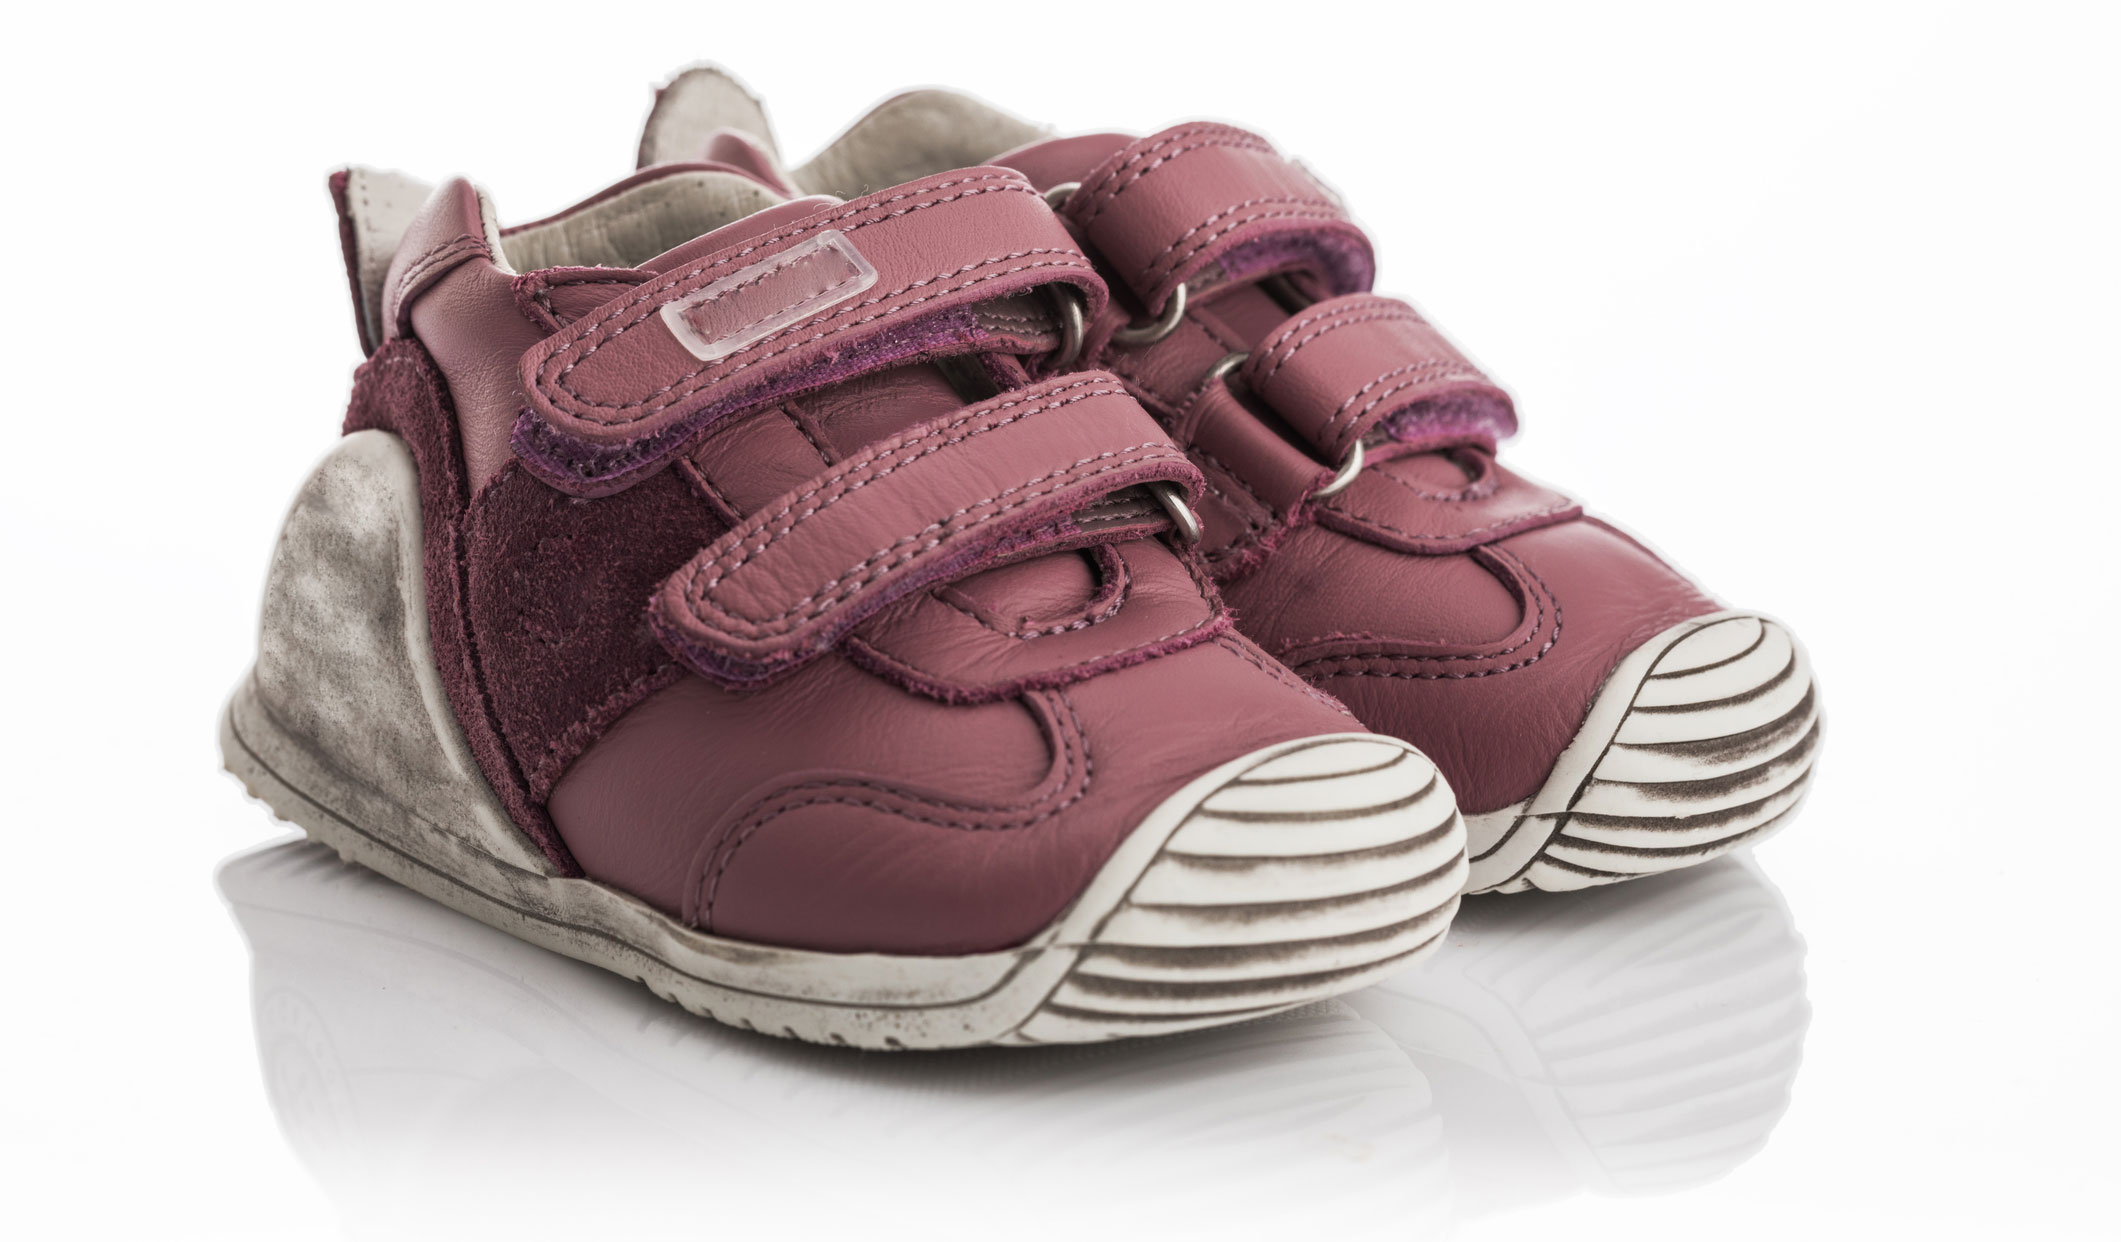 Arch Support Shoes for Toddlers